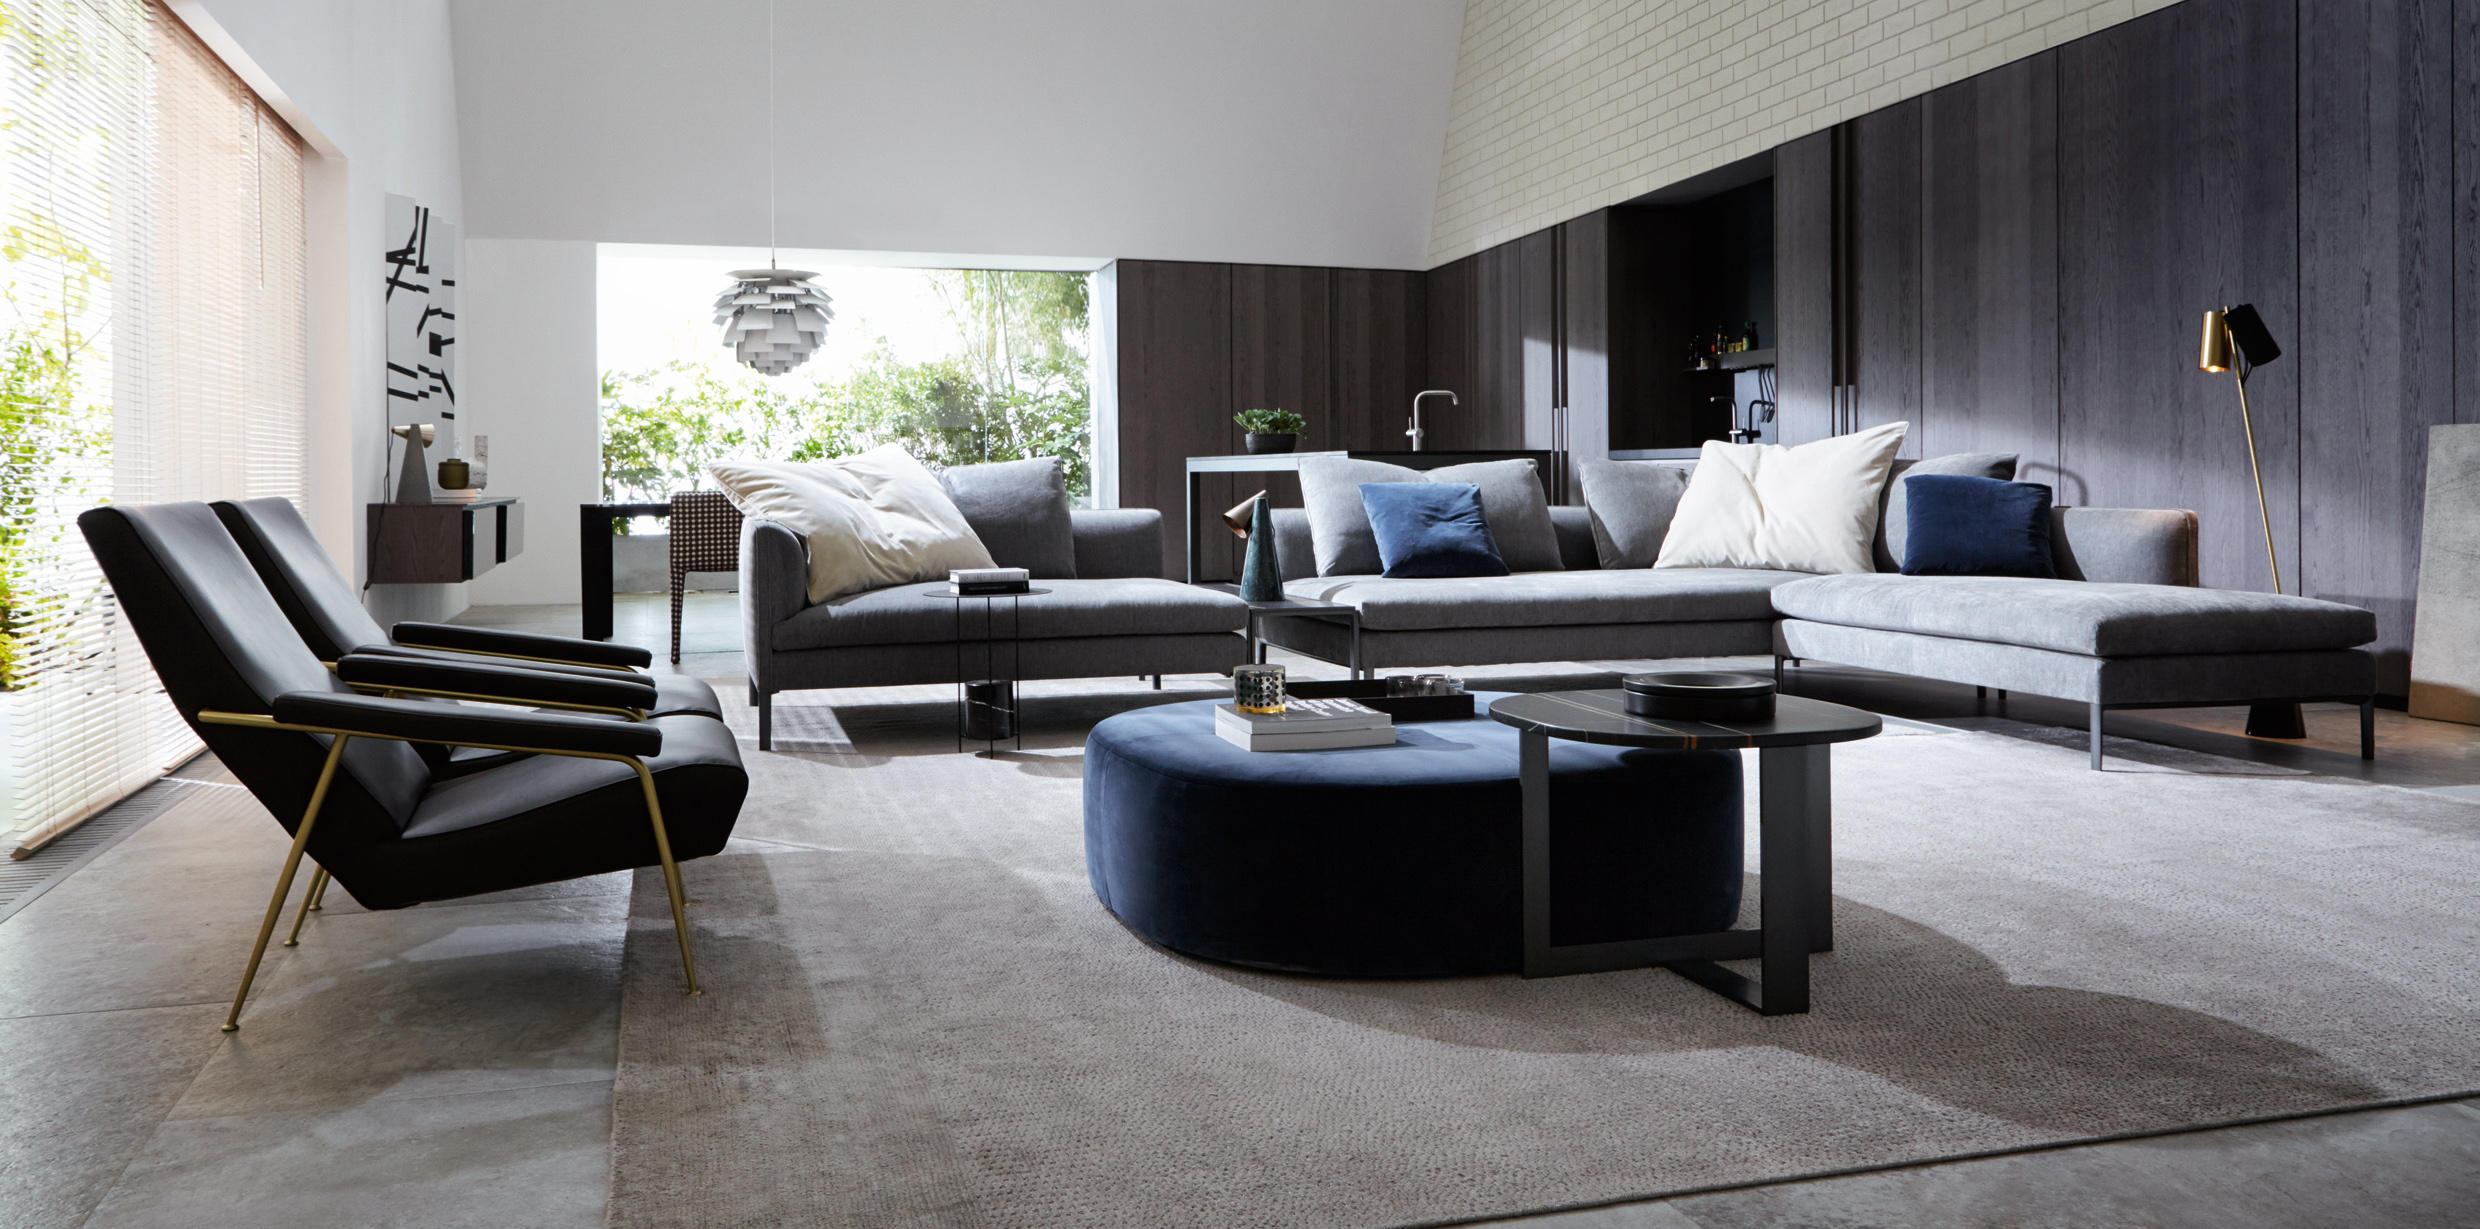 armchair lounge chairs from molteni c architonic. Black Bedroom Furniture Sets. Home Design Ideas